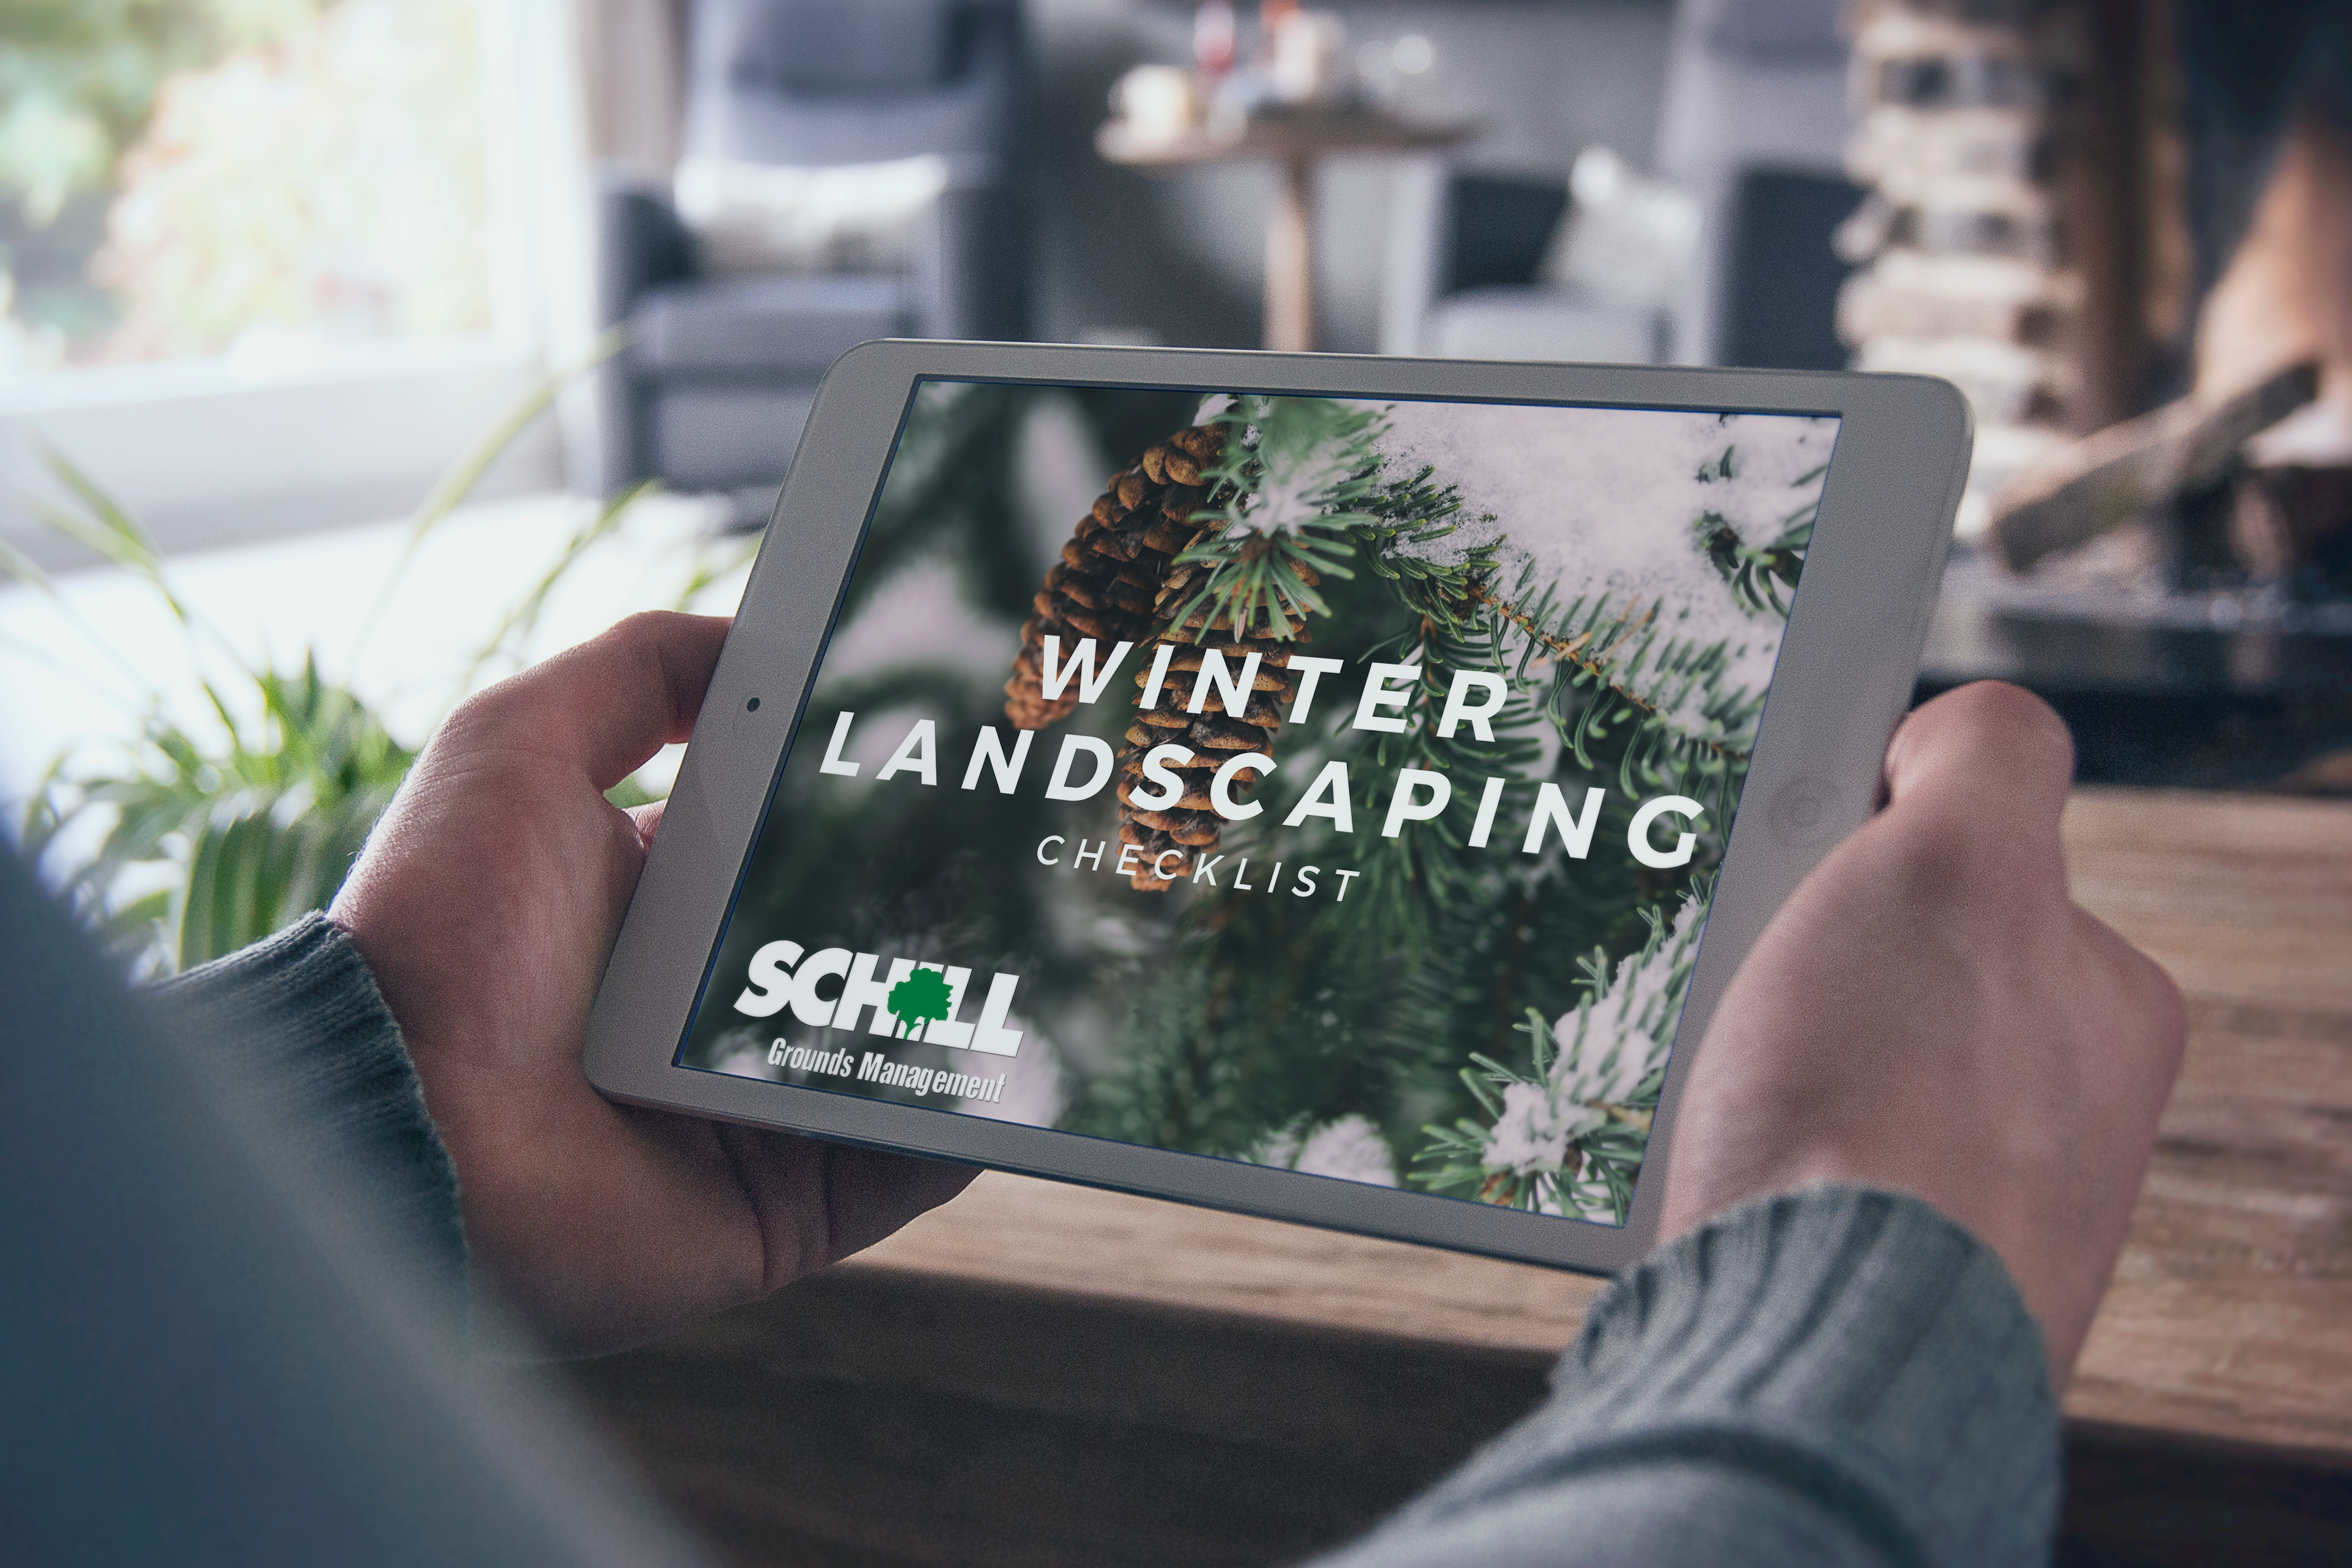 Winter landscaping checklist mockup SMALL.png